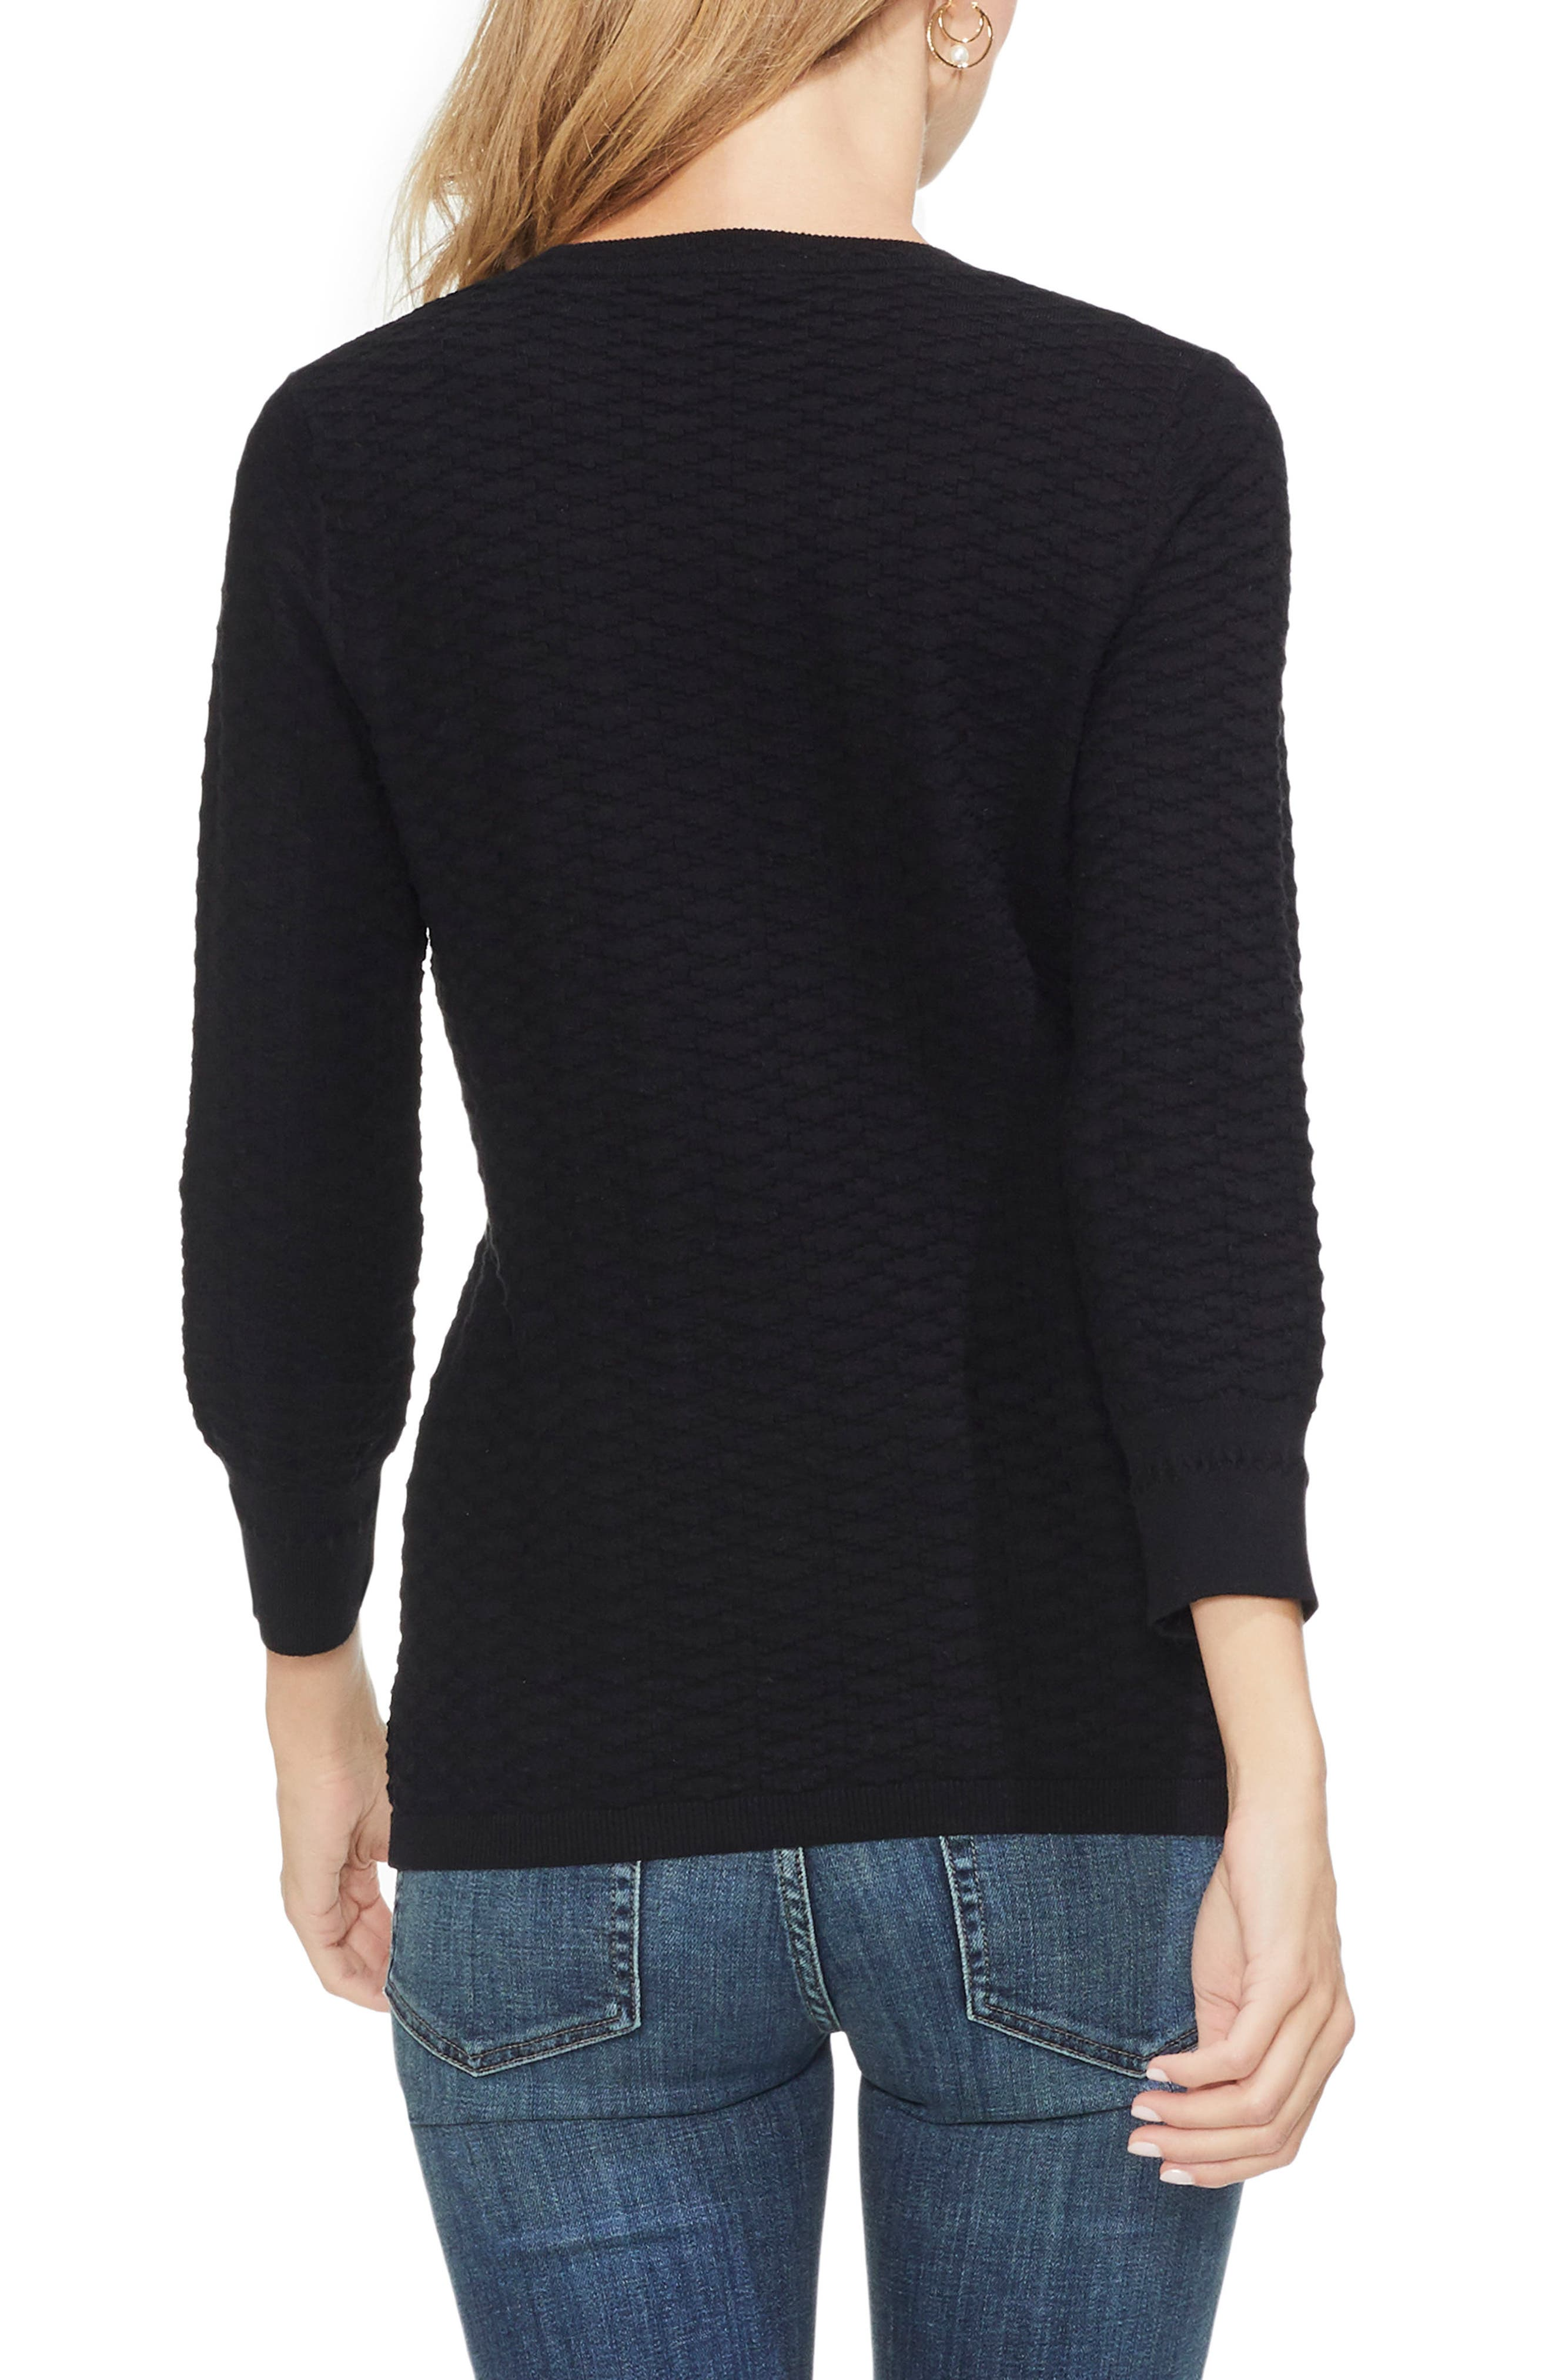 VINCE CAMUTO,                             Rhombus Stitch Sweater,                             Alternate thumbnail 2, color,                             006